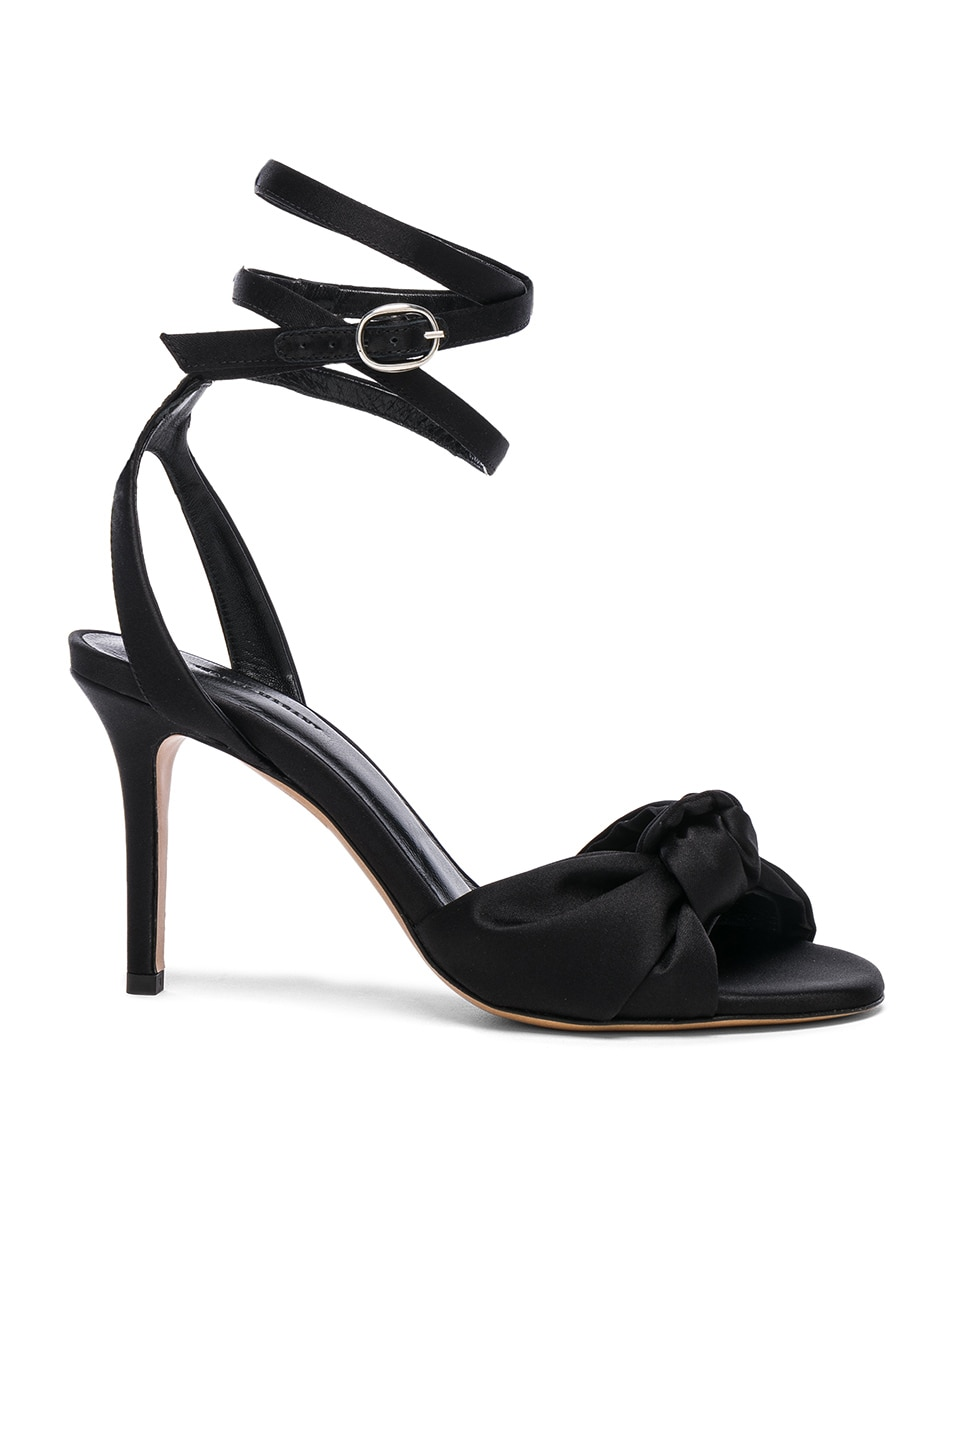 Image 1 of Isabel Marant Satin Abenya Heels in Black